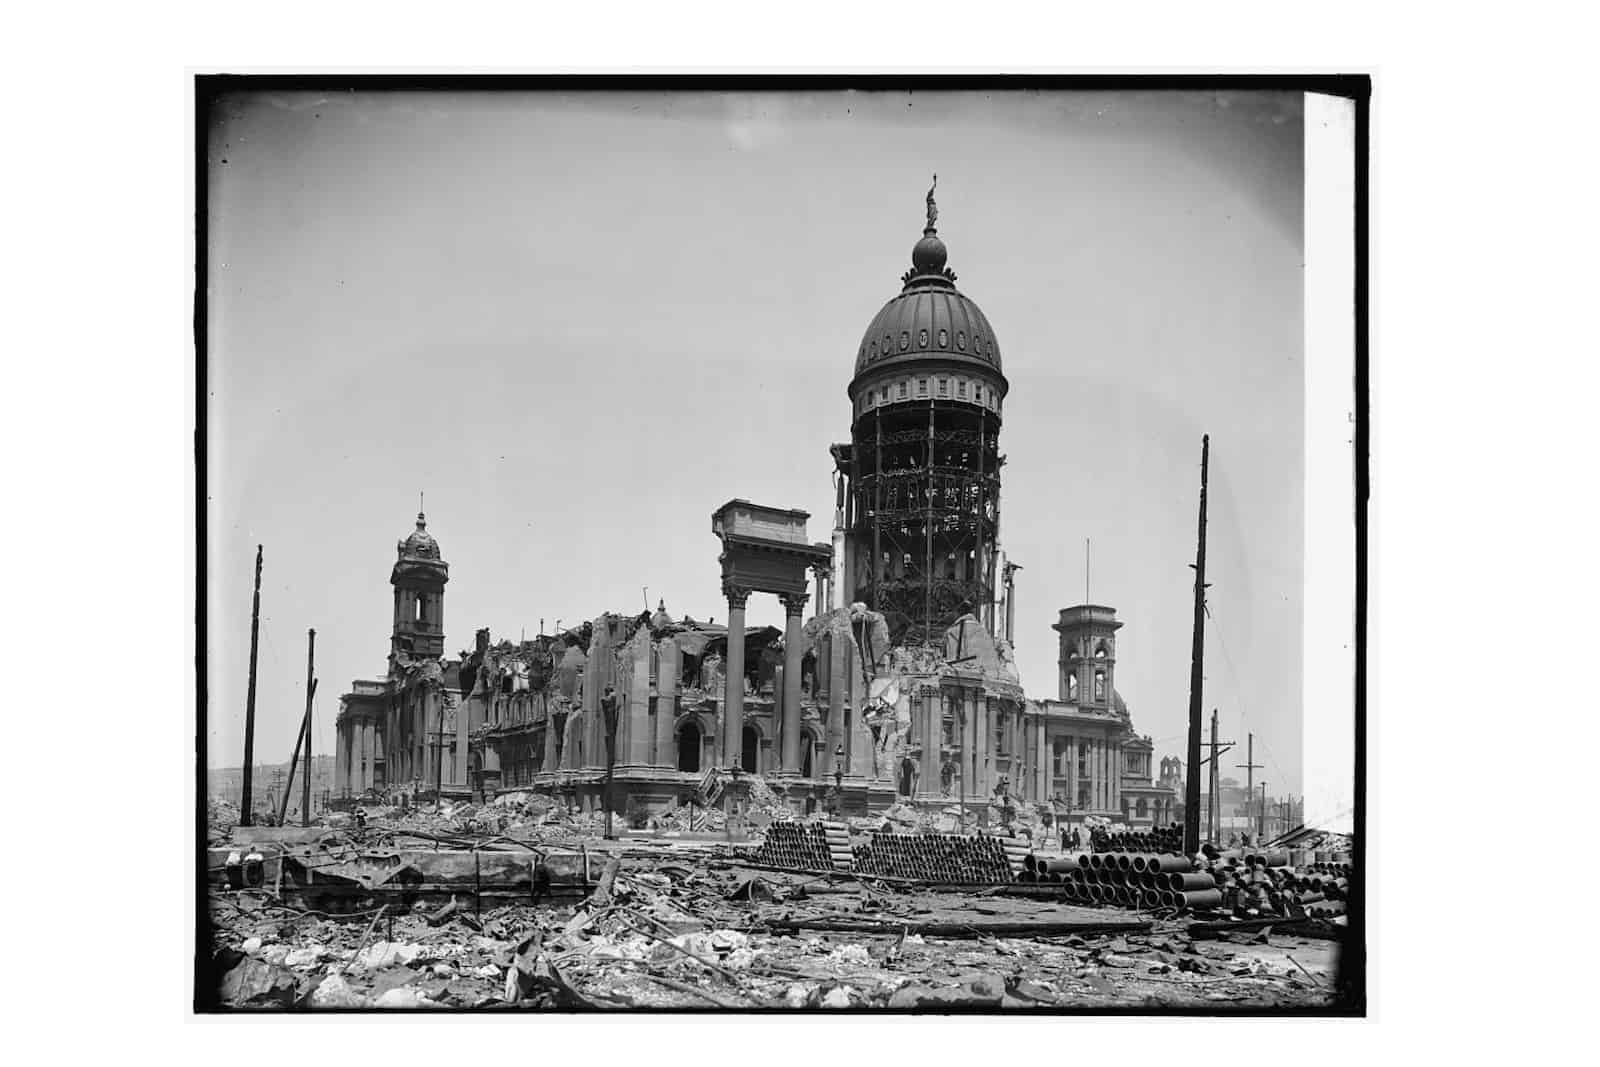 San Francisco's old city hall destroyed by 1906 Earthquake